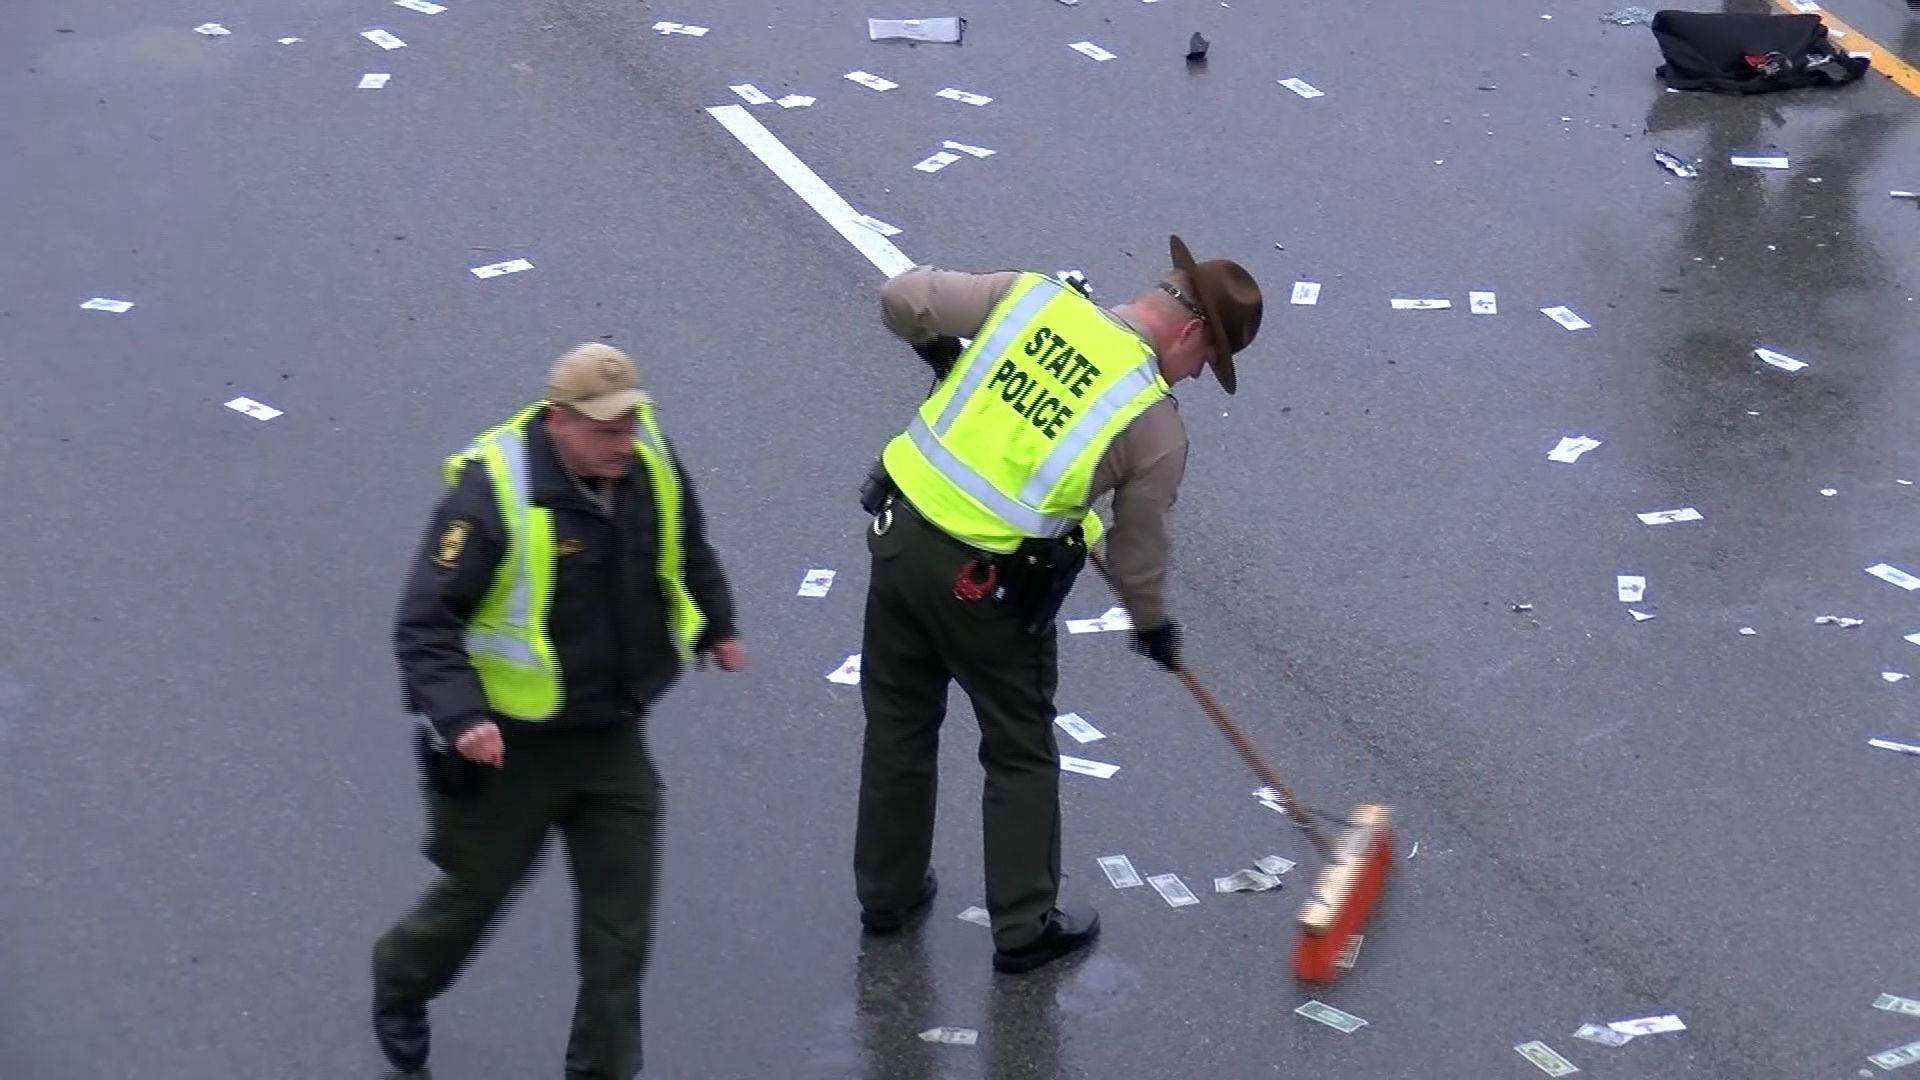 Illinois highway littered with cash after car accident